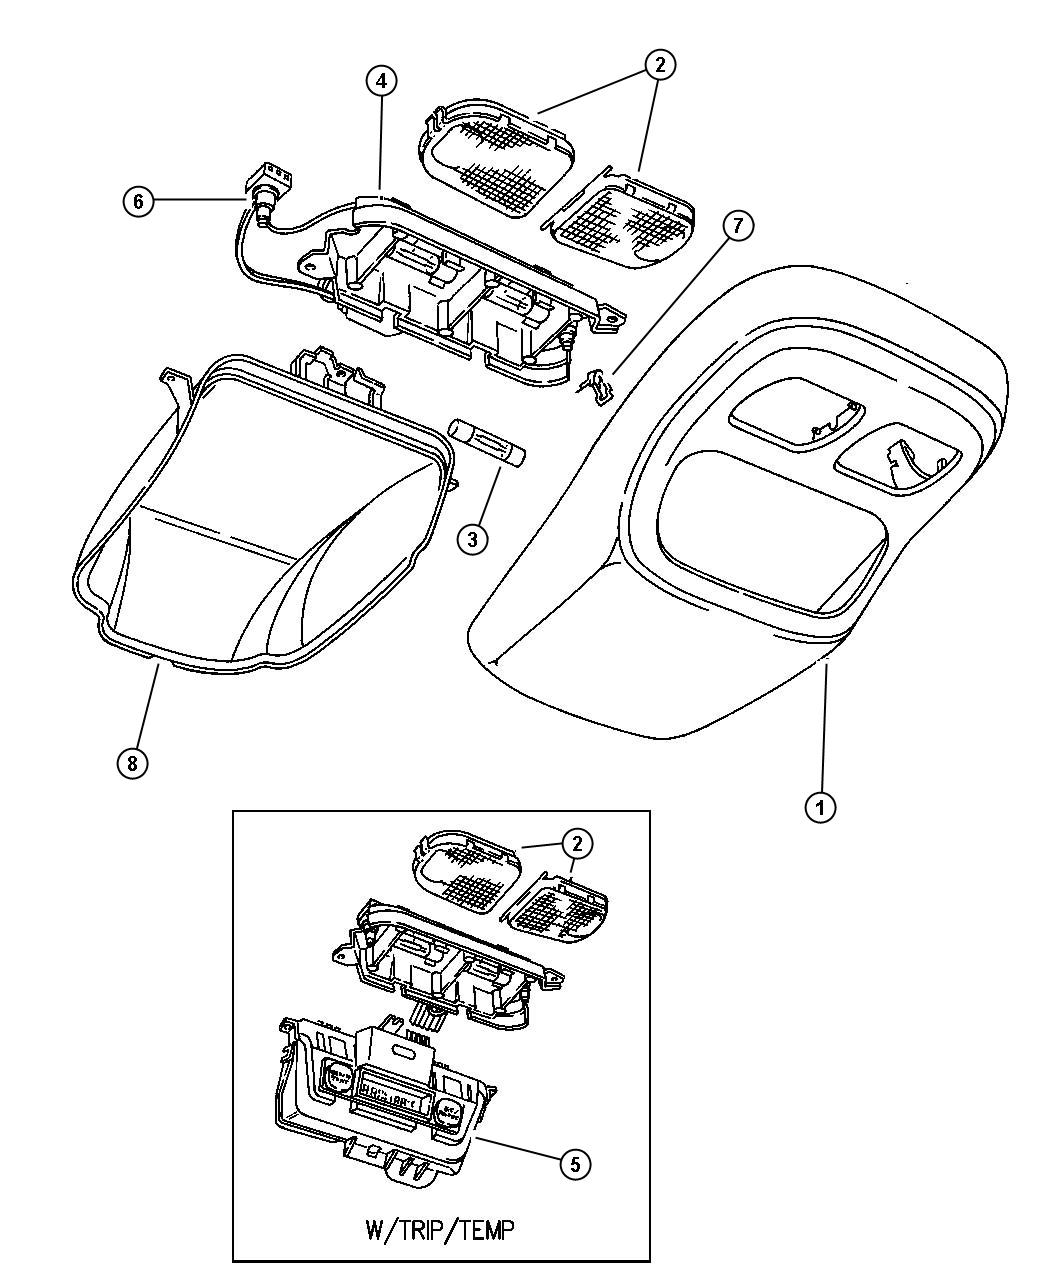 Service manual [1997 Plymouth Neon Overhead Console Repair